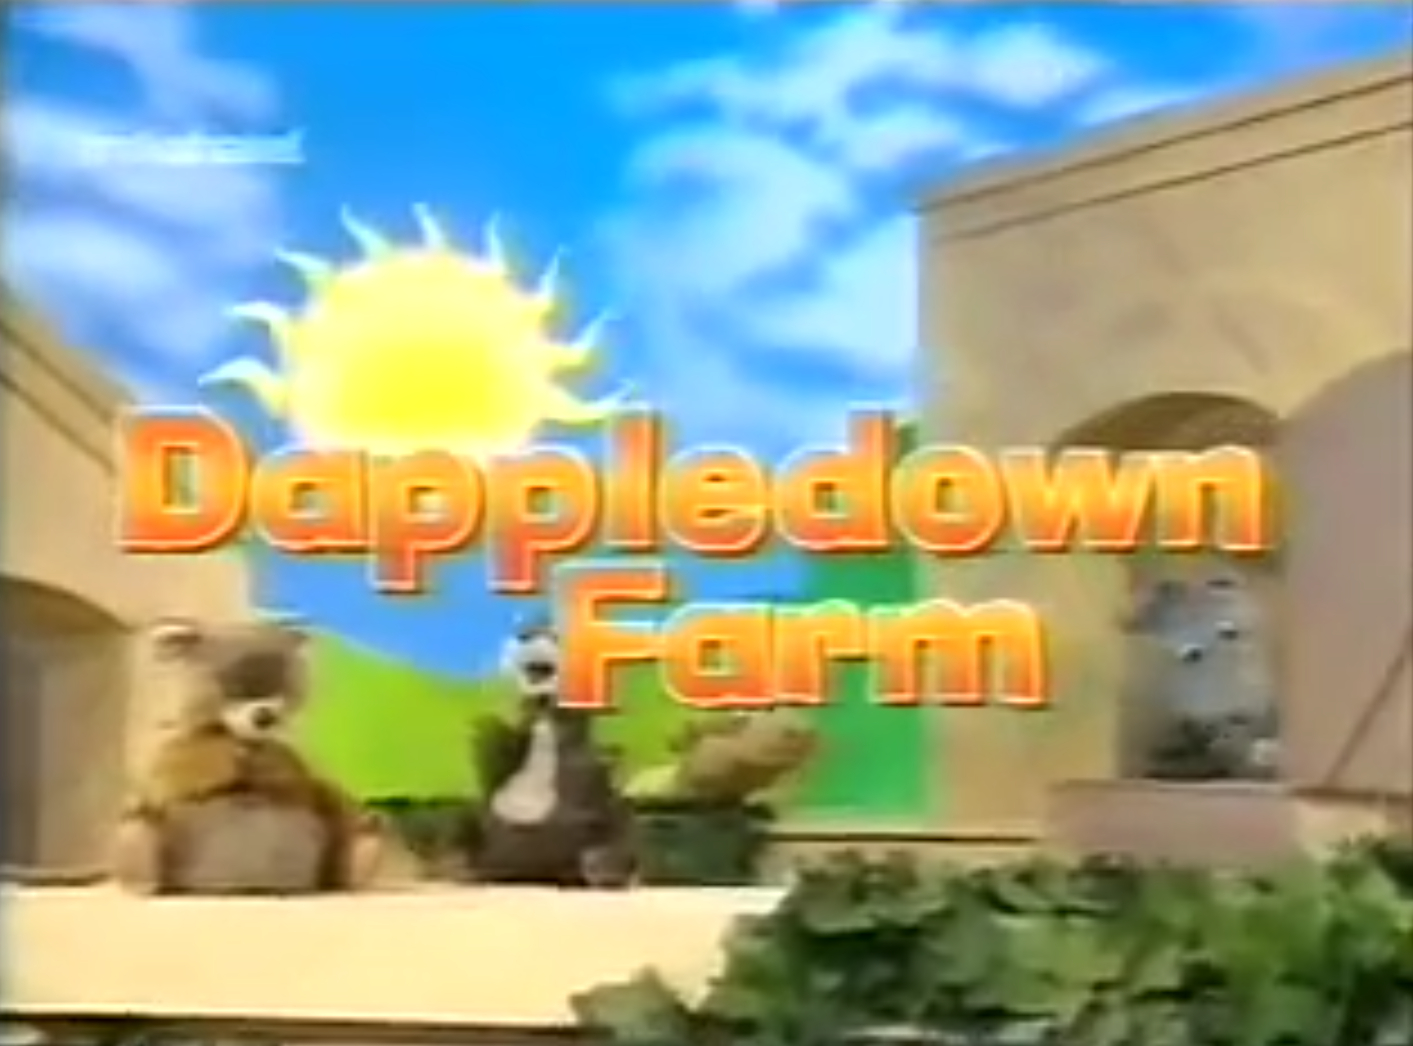 Dappledown Farm